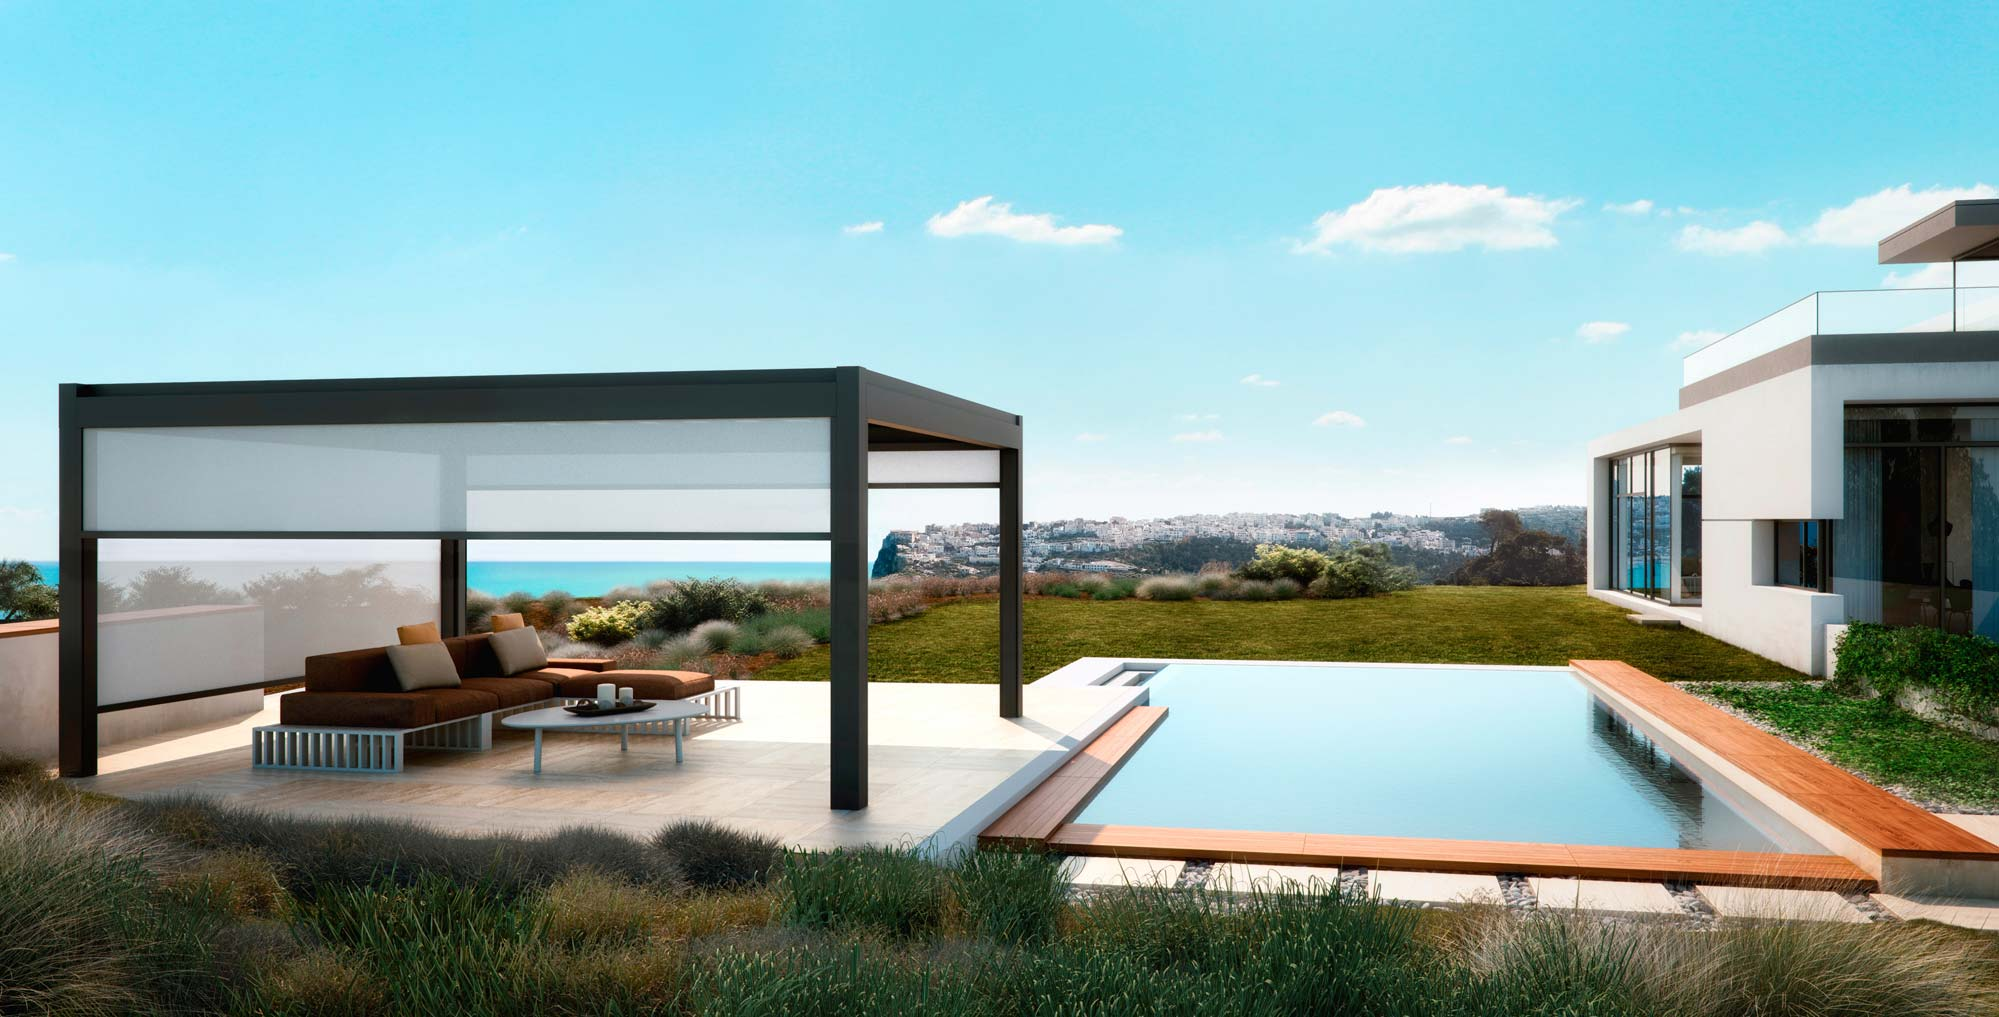 An open pegola with solar shades and pool next to house